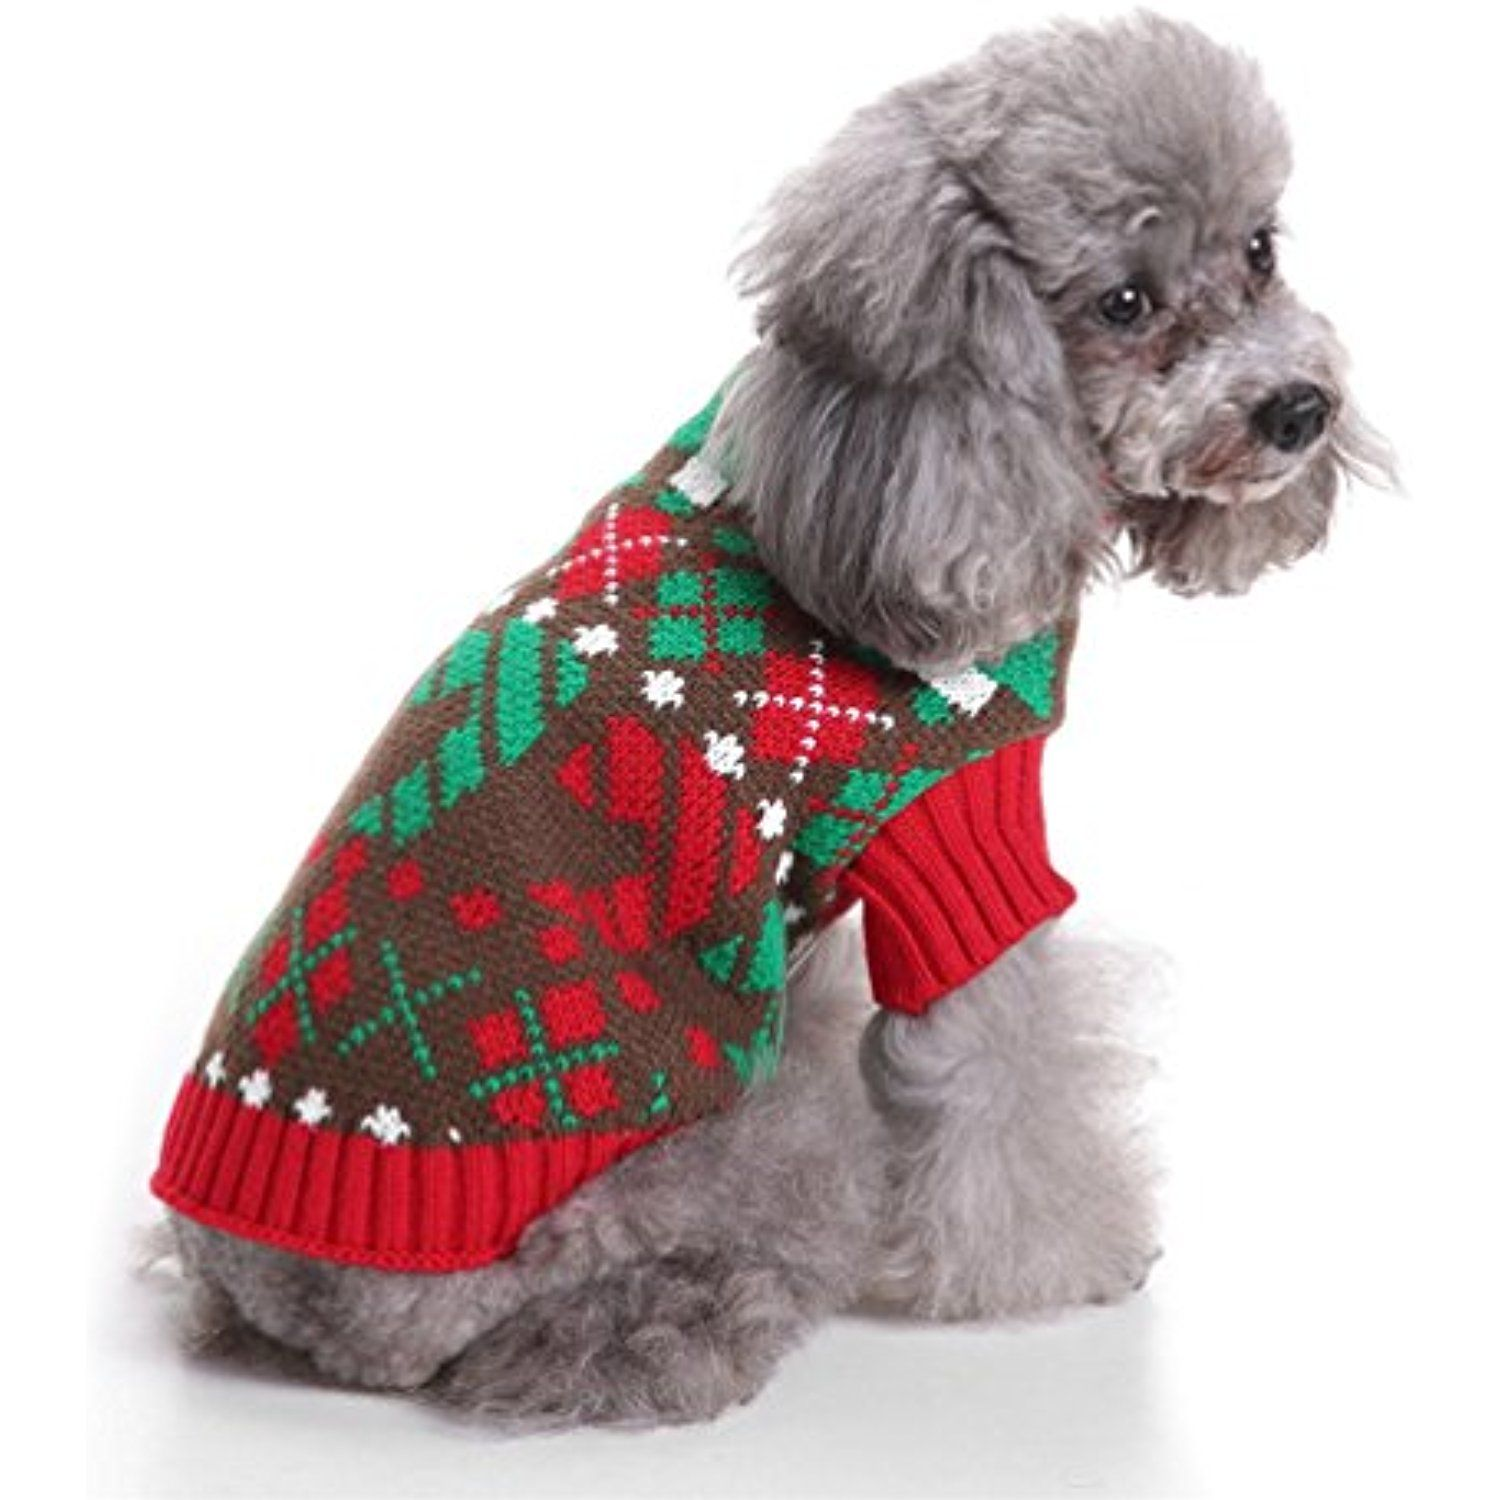 Sawmong Dog Sweater Classic Knitwear Vintage Holiday Festive